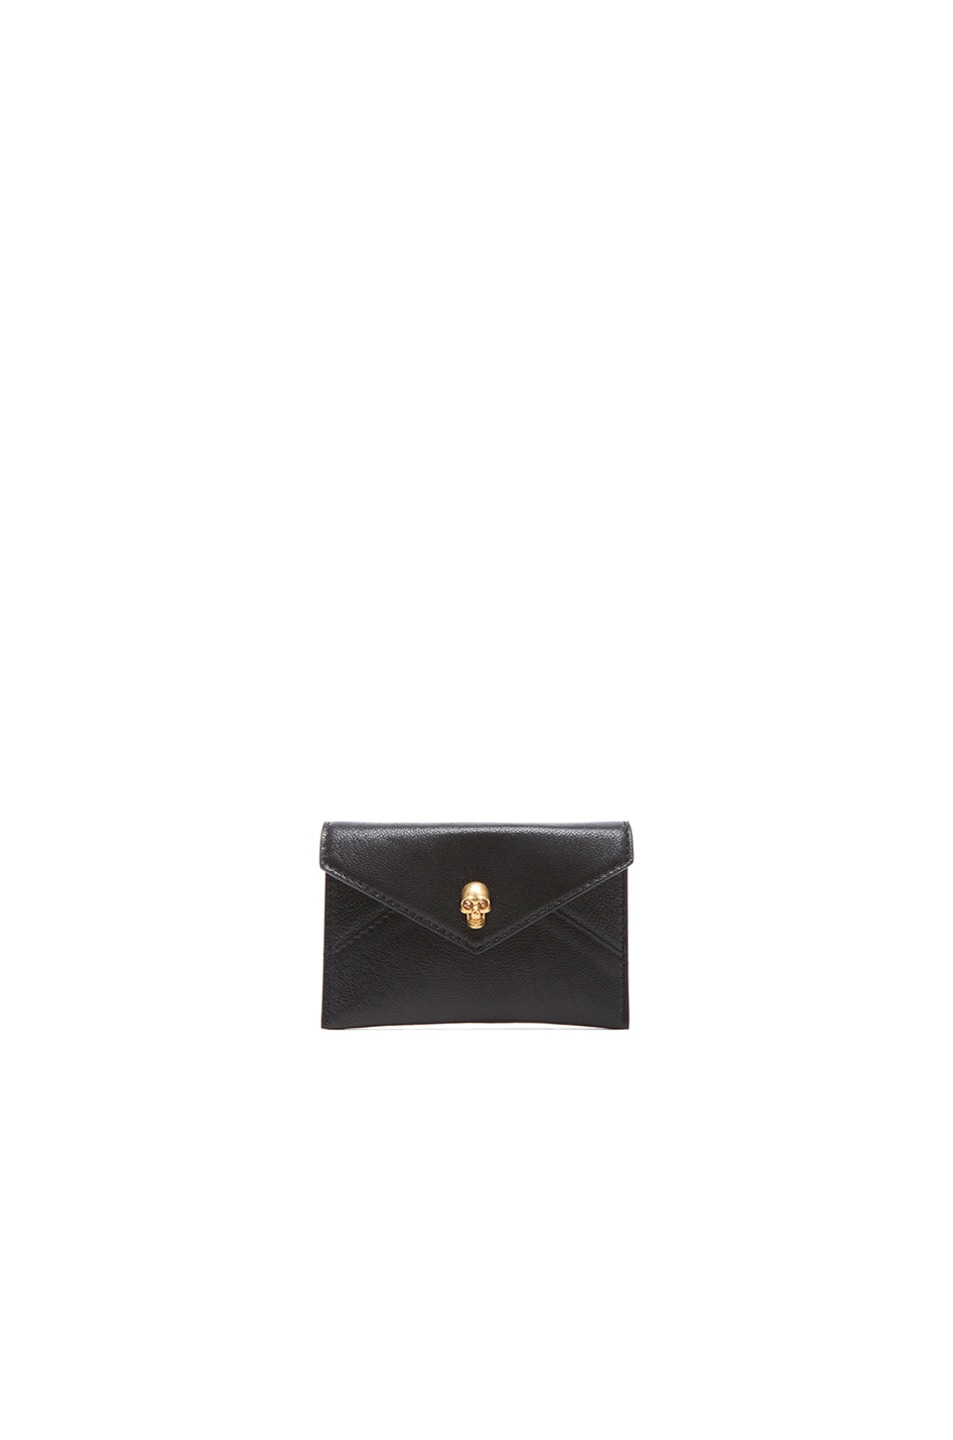 Image 1 of Alexander McQueen Envelope Card Holder in Black